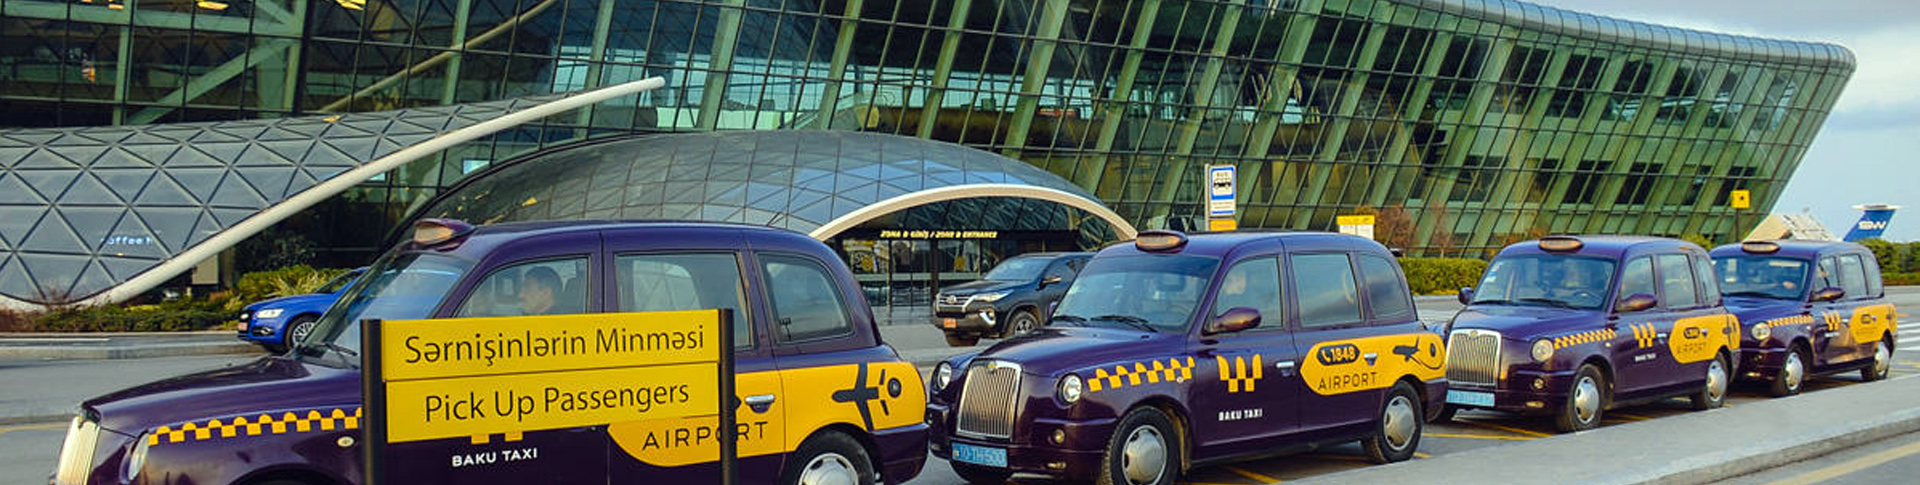 Taxi cabs in from of the Baku airport.